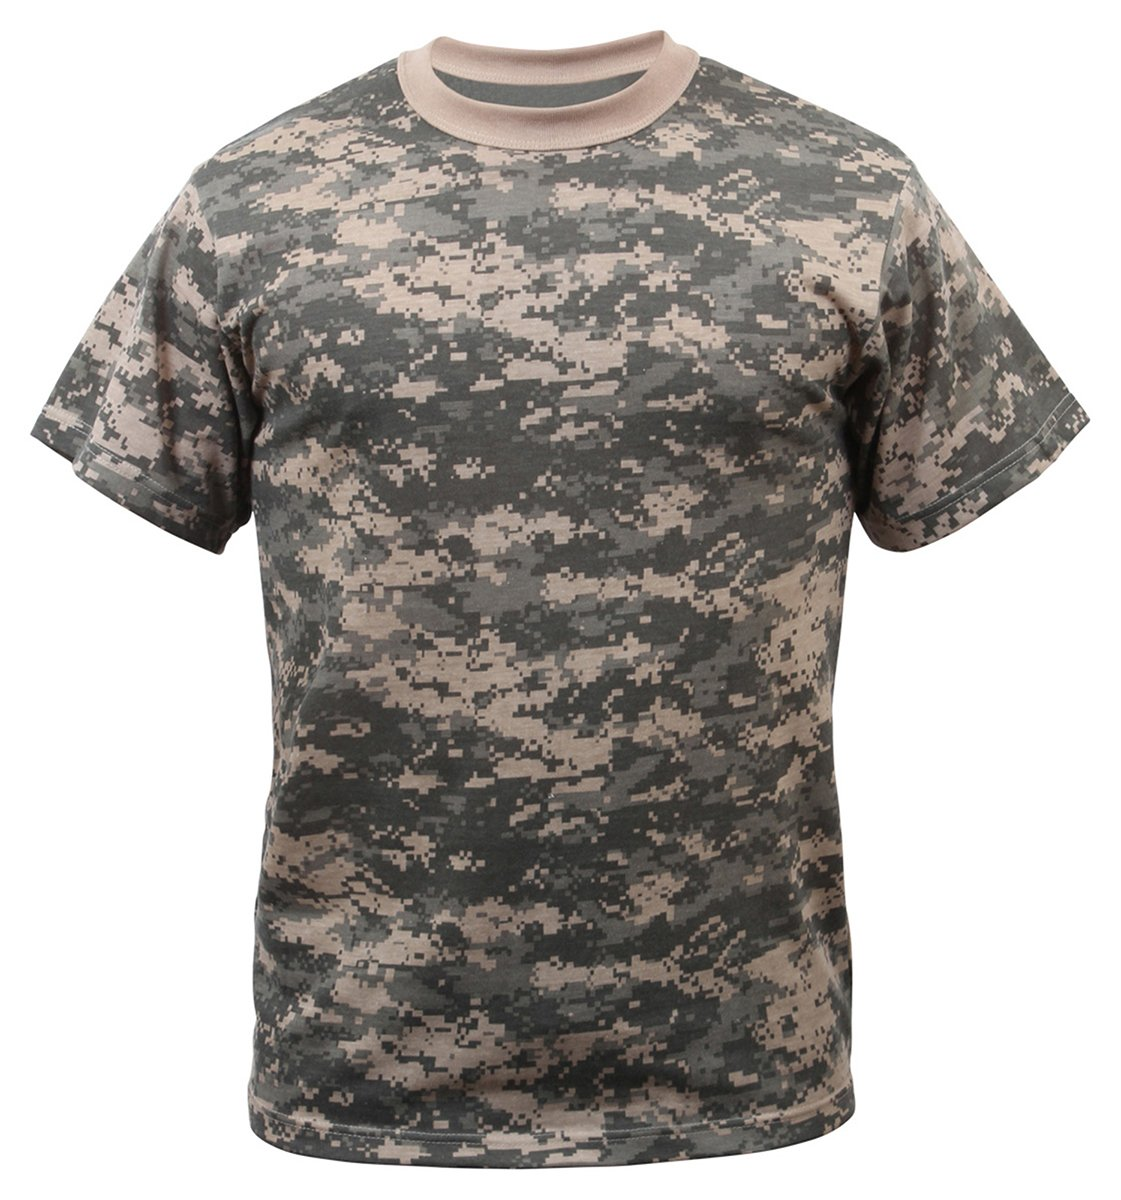 Rothco Kids T-Shirt - ACU Digital Camo RSR Group Inc 613902677333